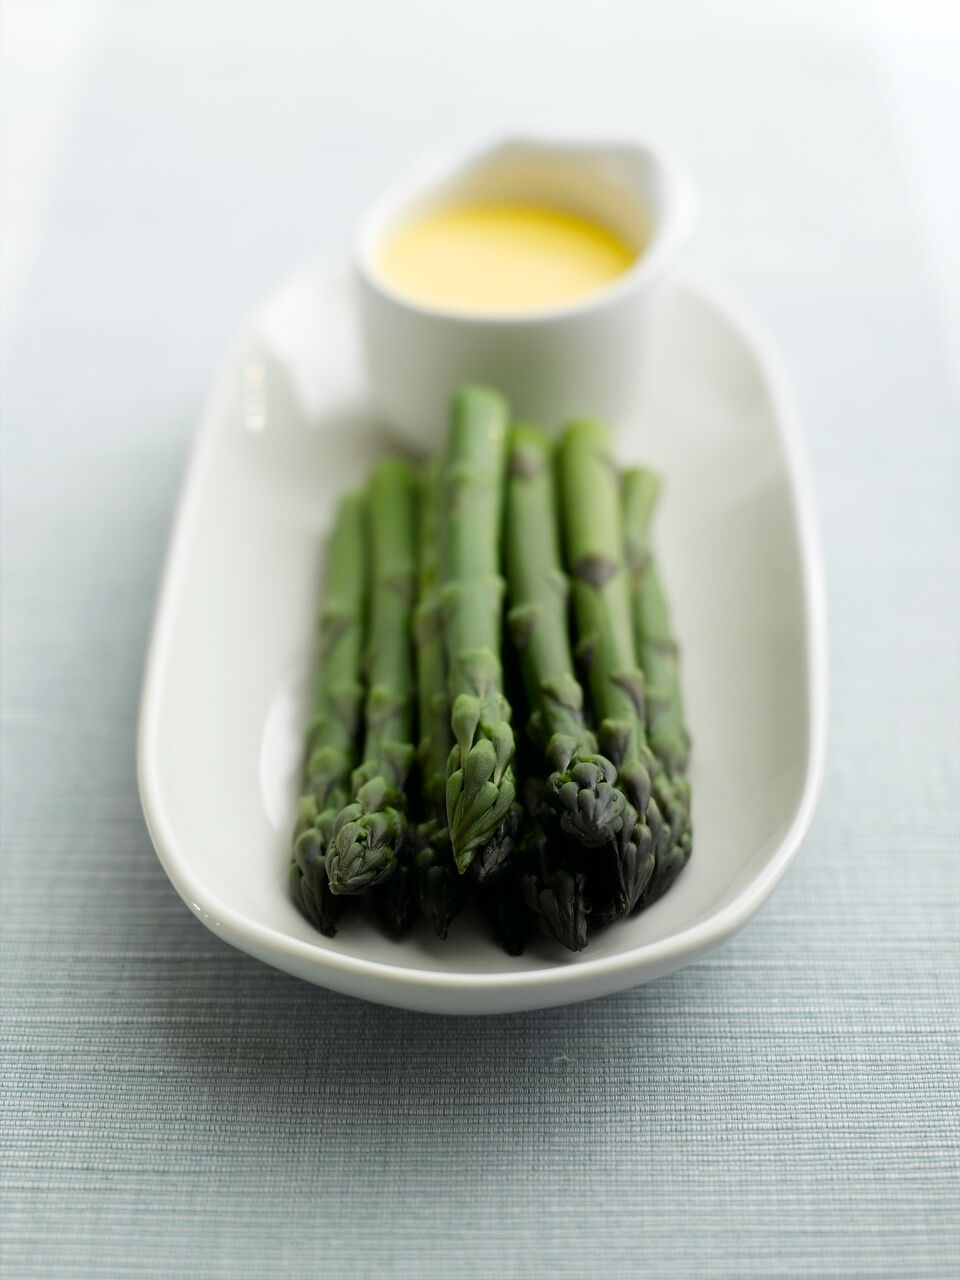 Quick Microwave Hollandaise Sauce To Serve With Asparagus Preparation Time 5 Minutes Cooking 6